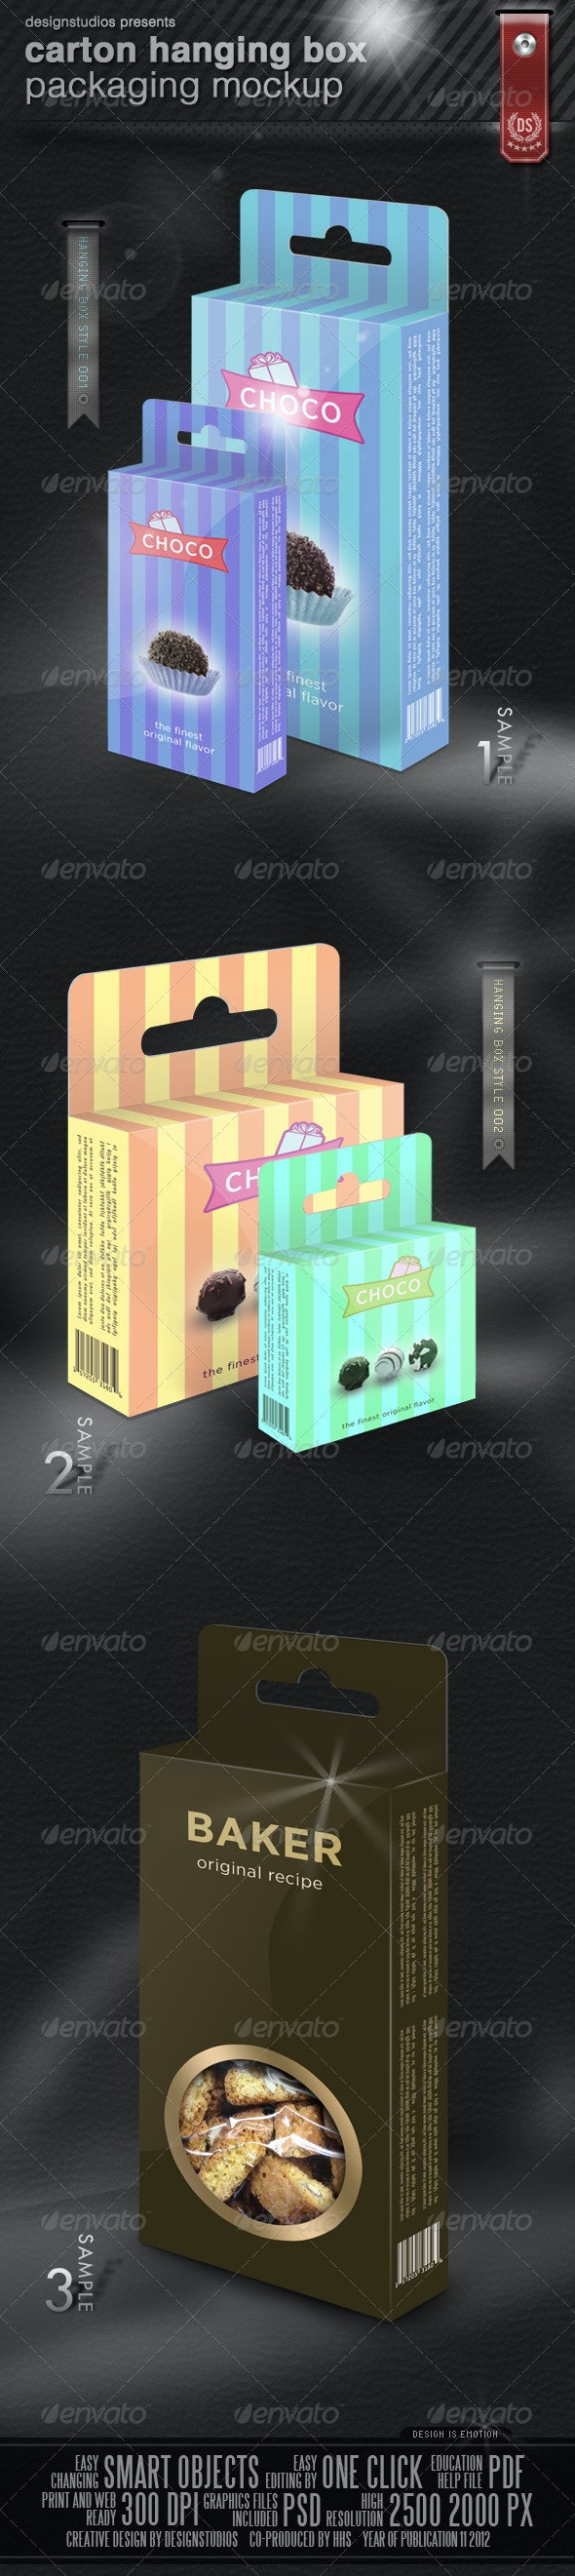 Carton Hanging Box Packaging Mock-Up - Food and Drink Packaging